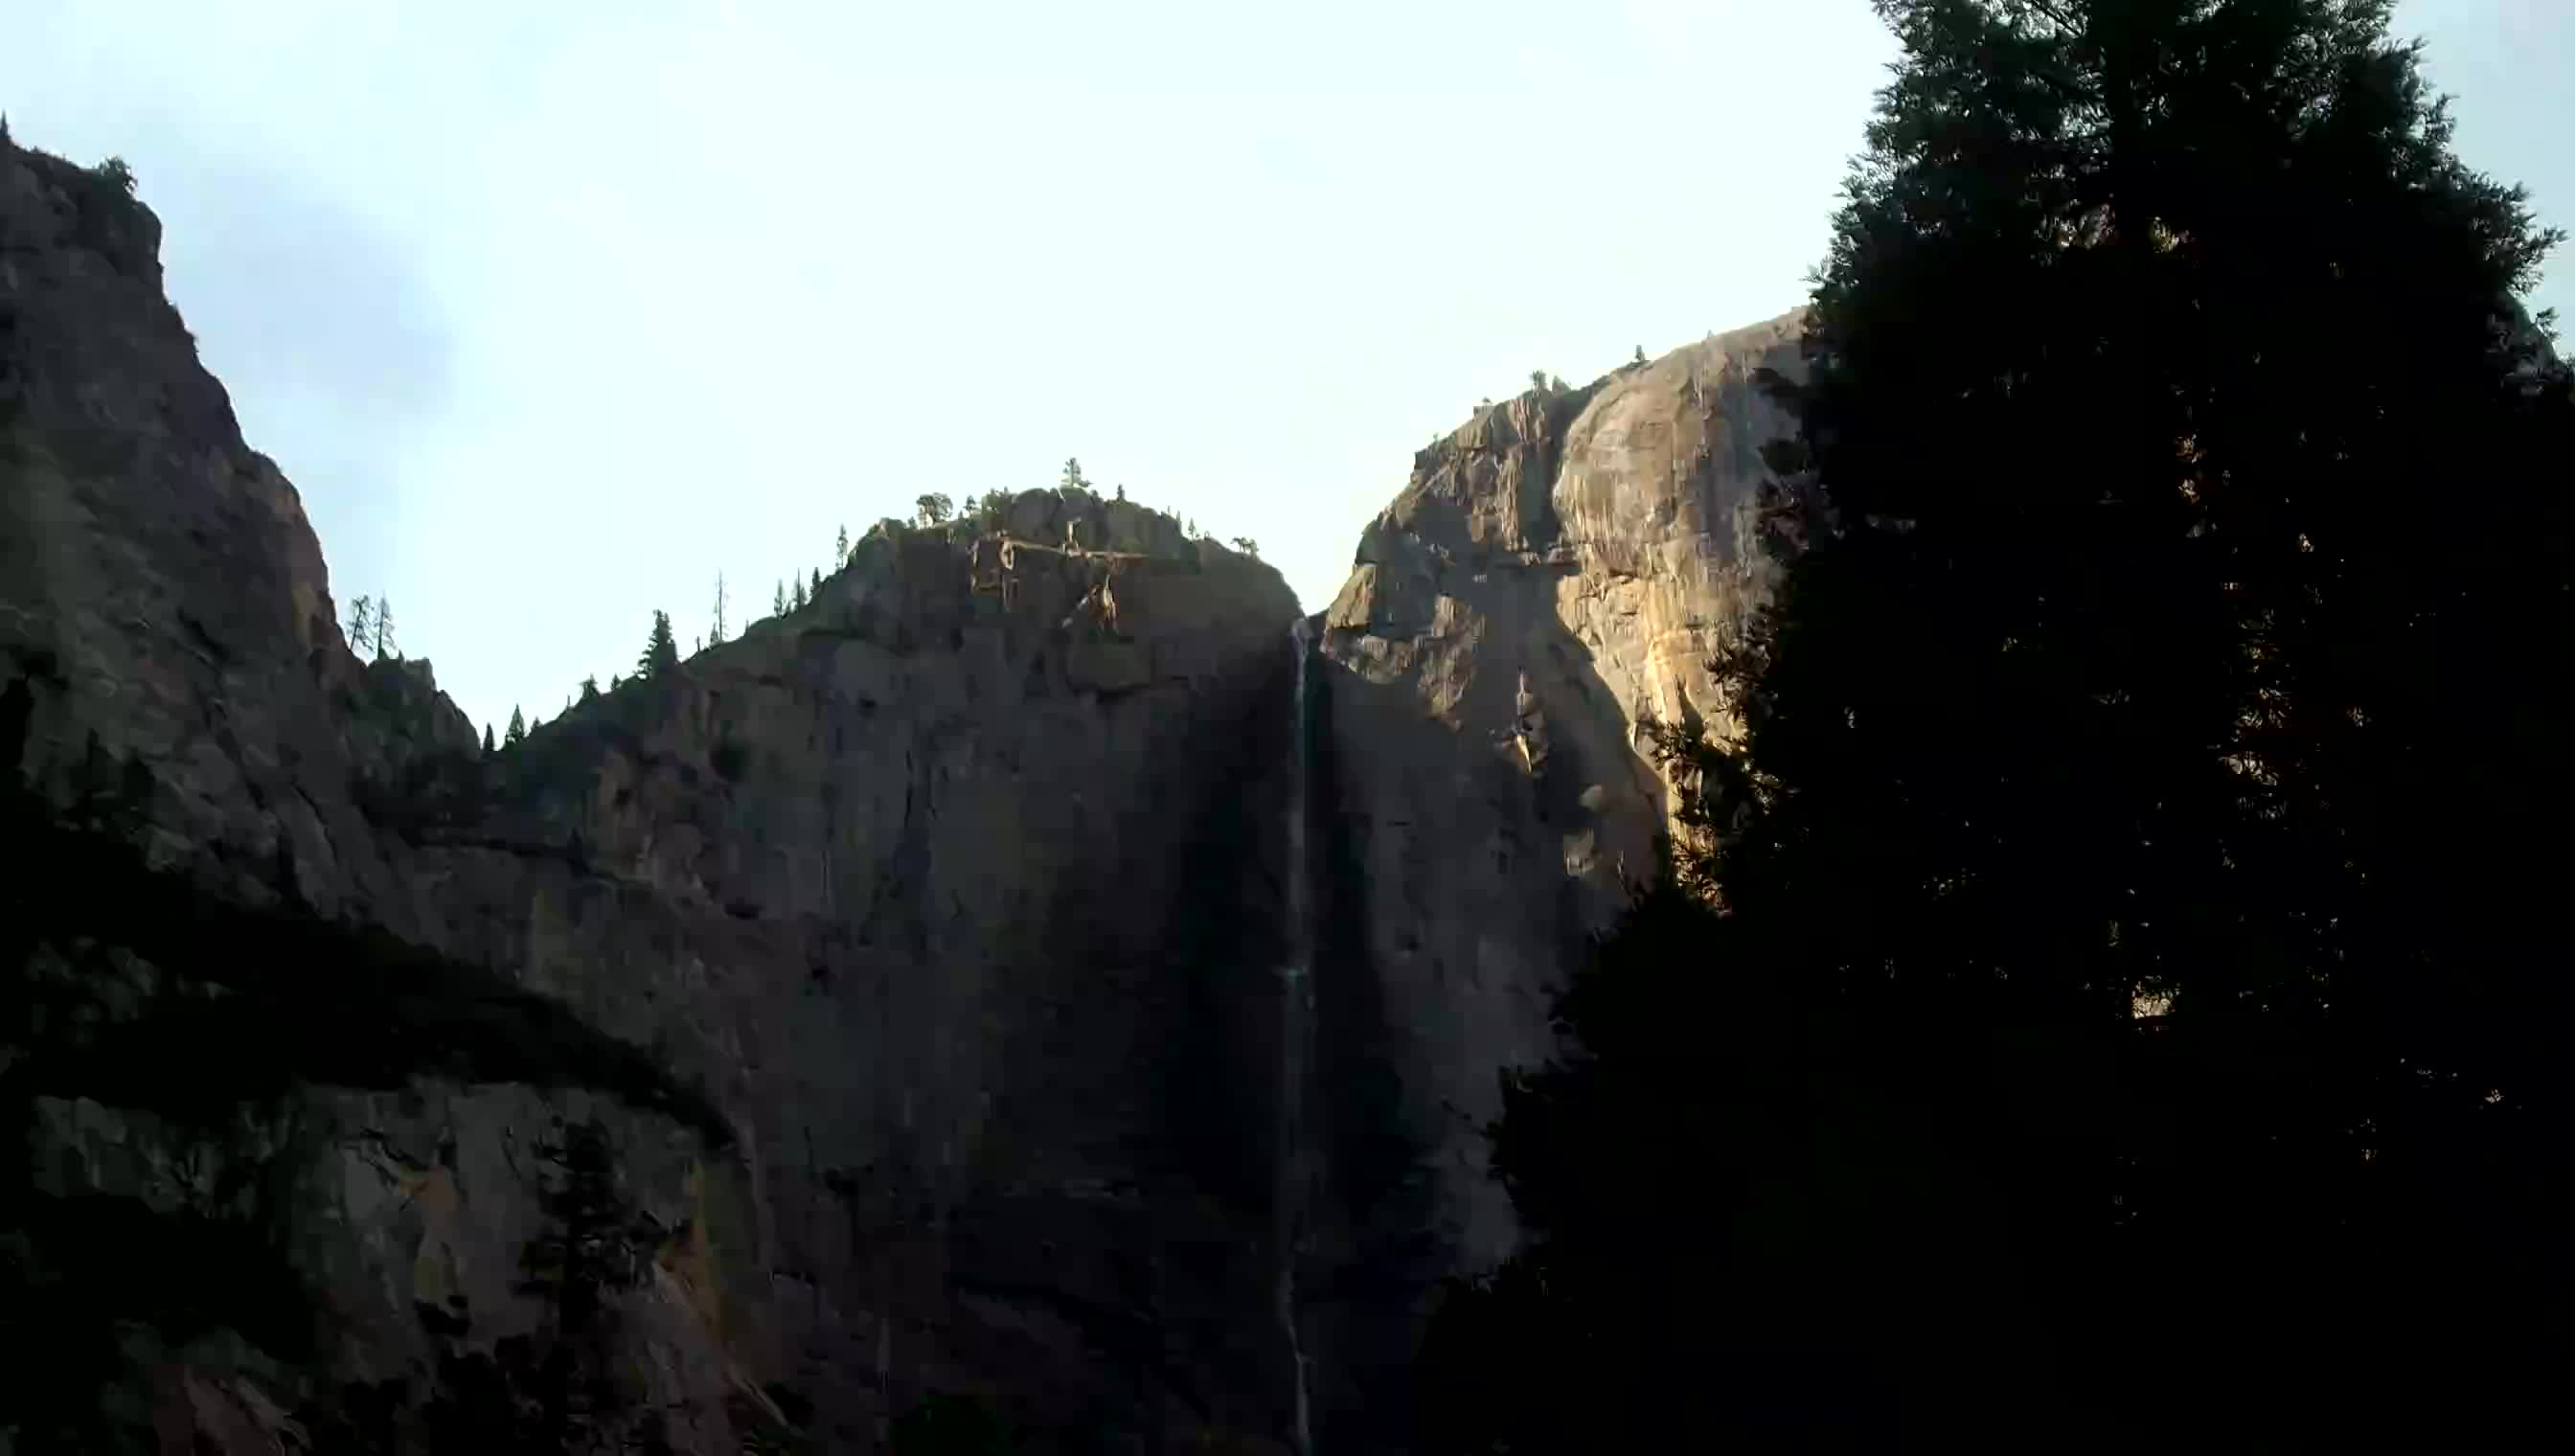 Yosemite Falls preview image